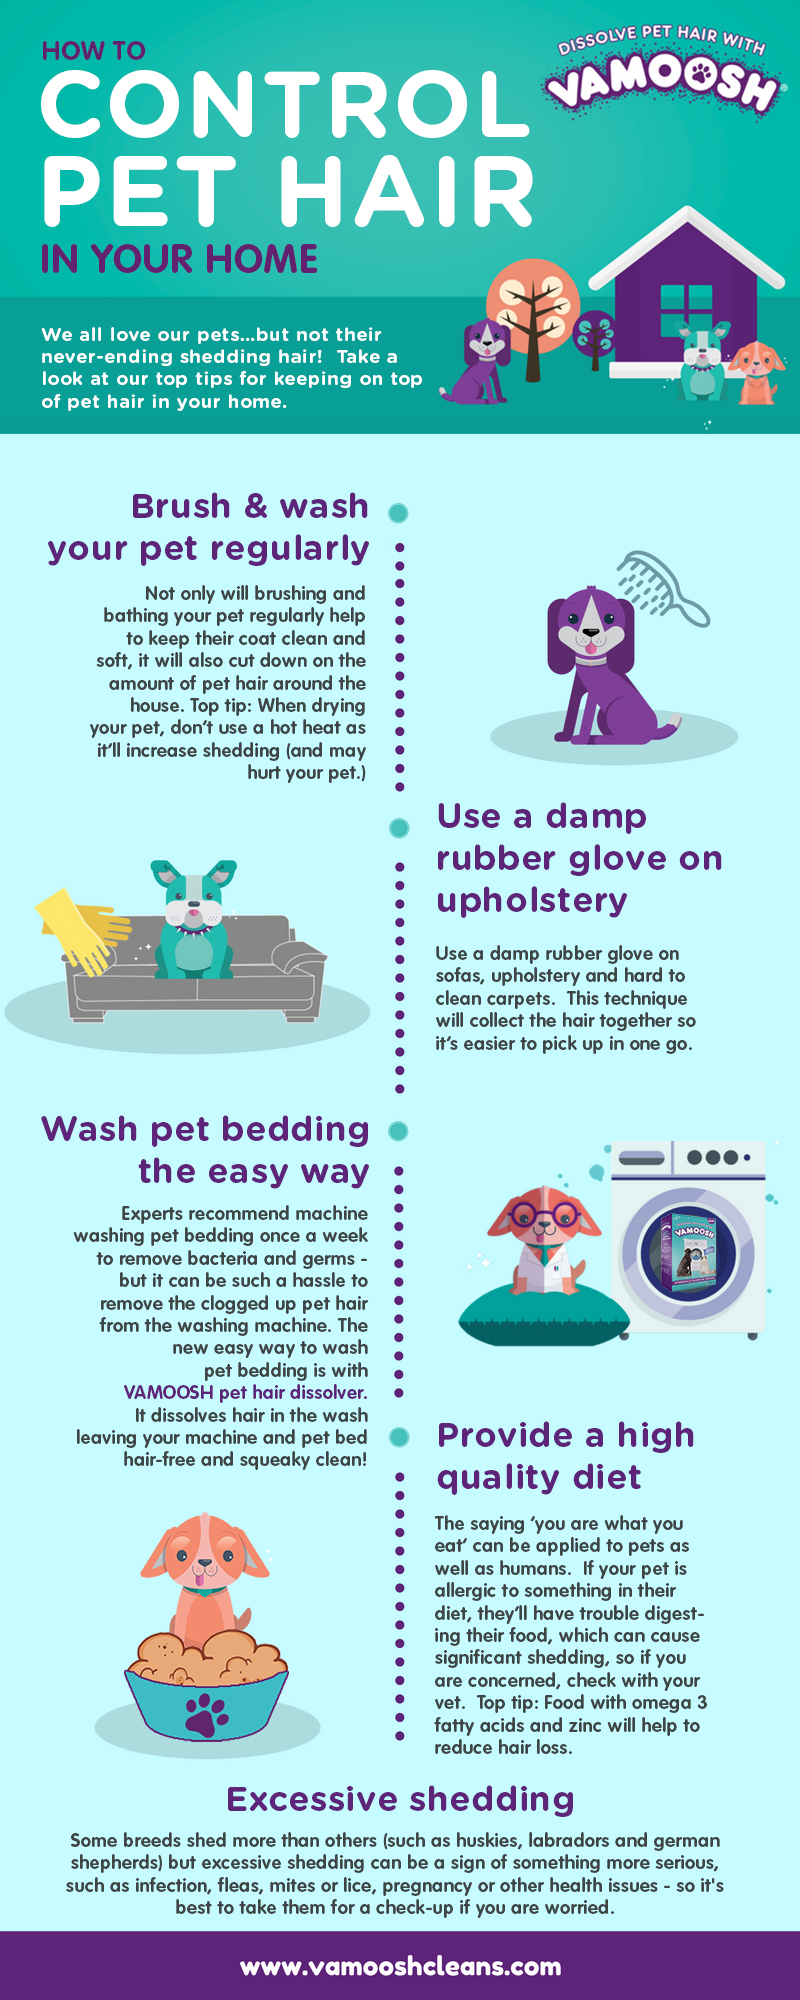 Vamoosh infographic How to control pet hair in the home